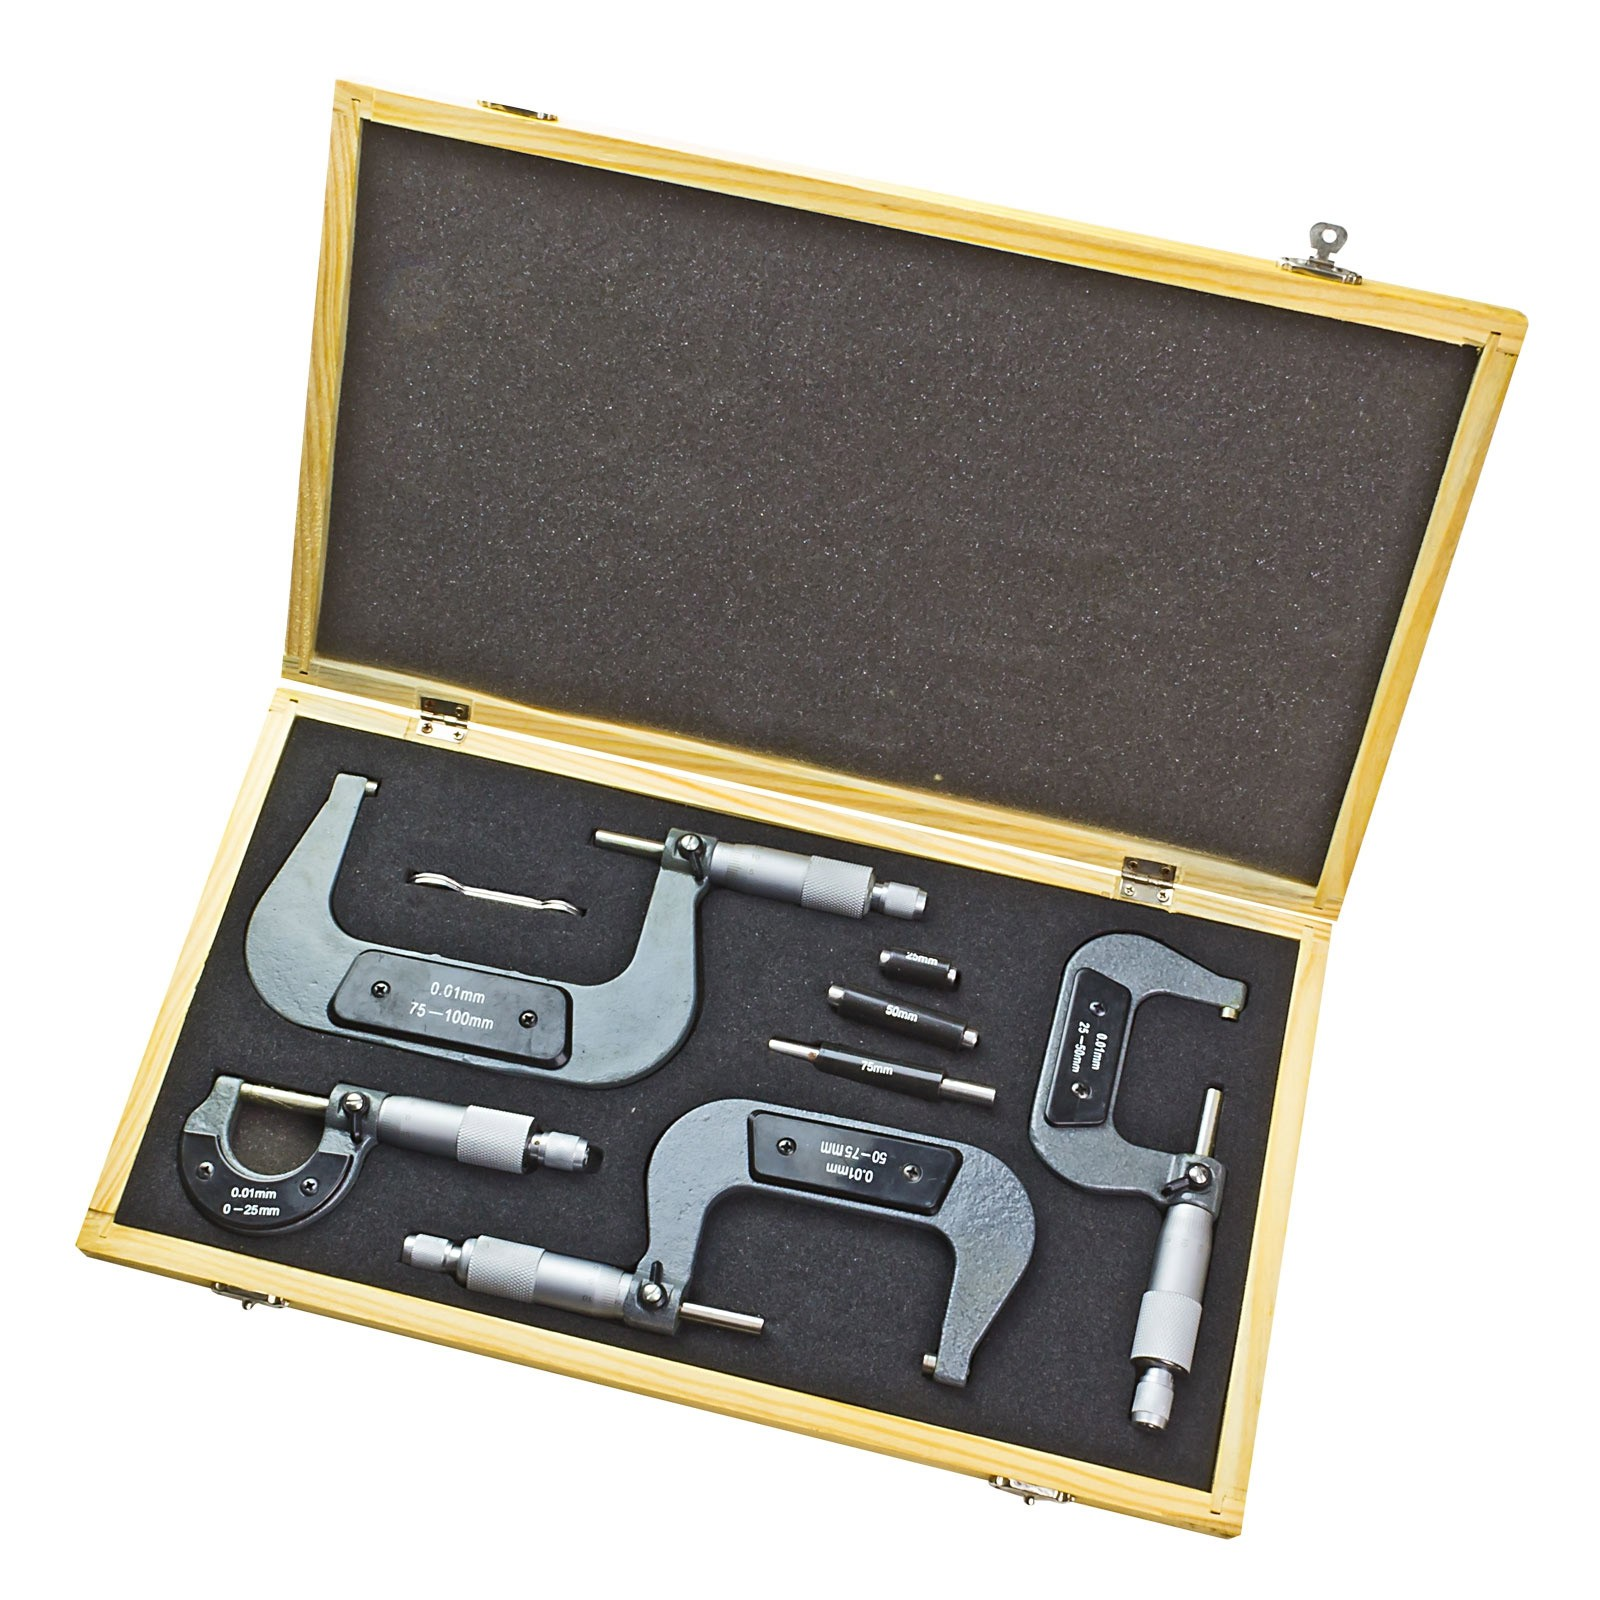 mikrometer b gelme schraube micrometer messschraube set 4 teilig im holzkoffer ebay. Black Bedroom Furniture Sets. Home Design Ideas